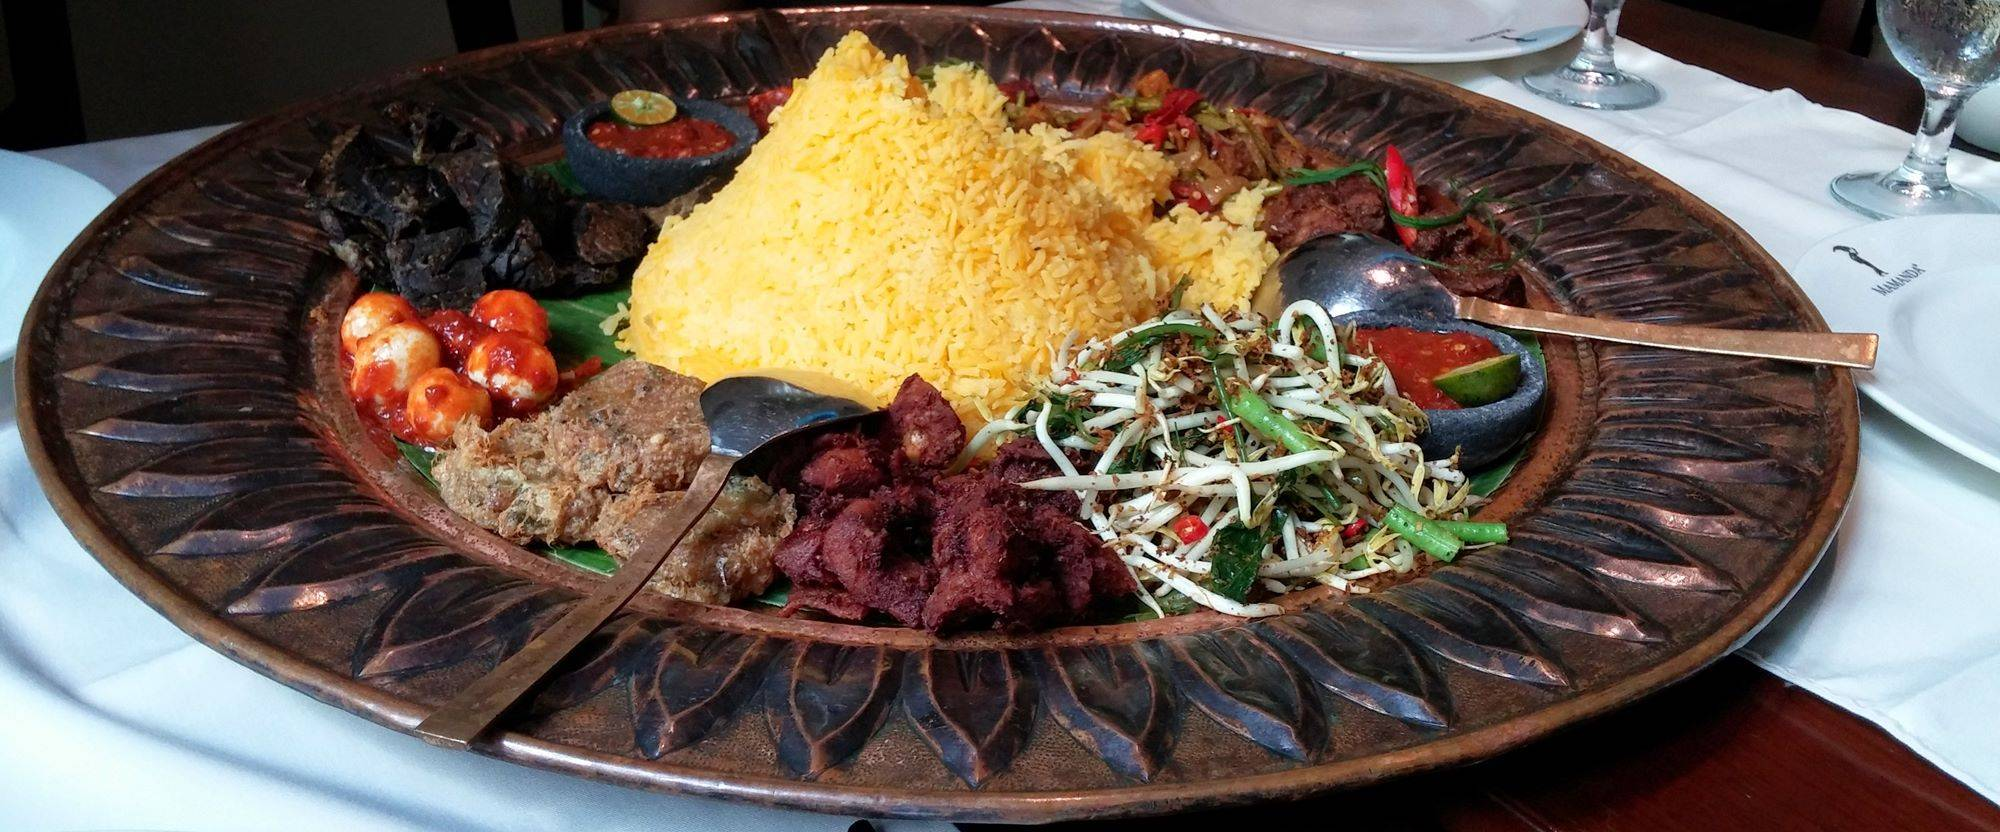 Mixed Malay food